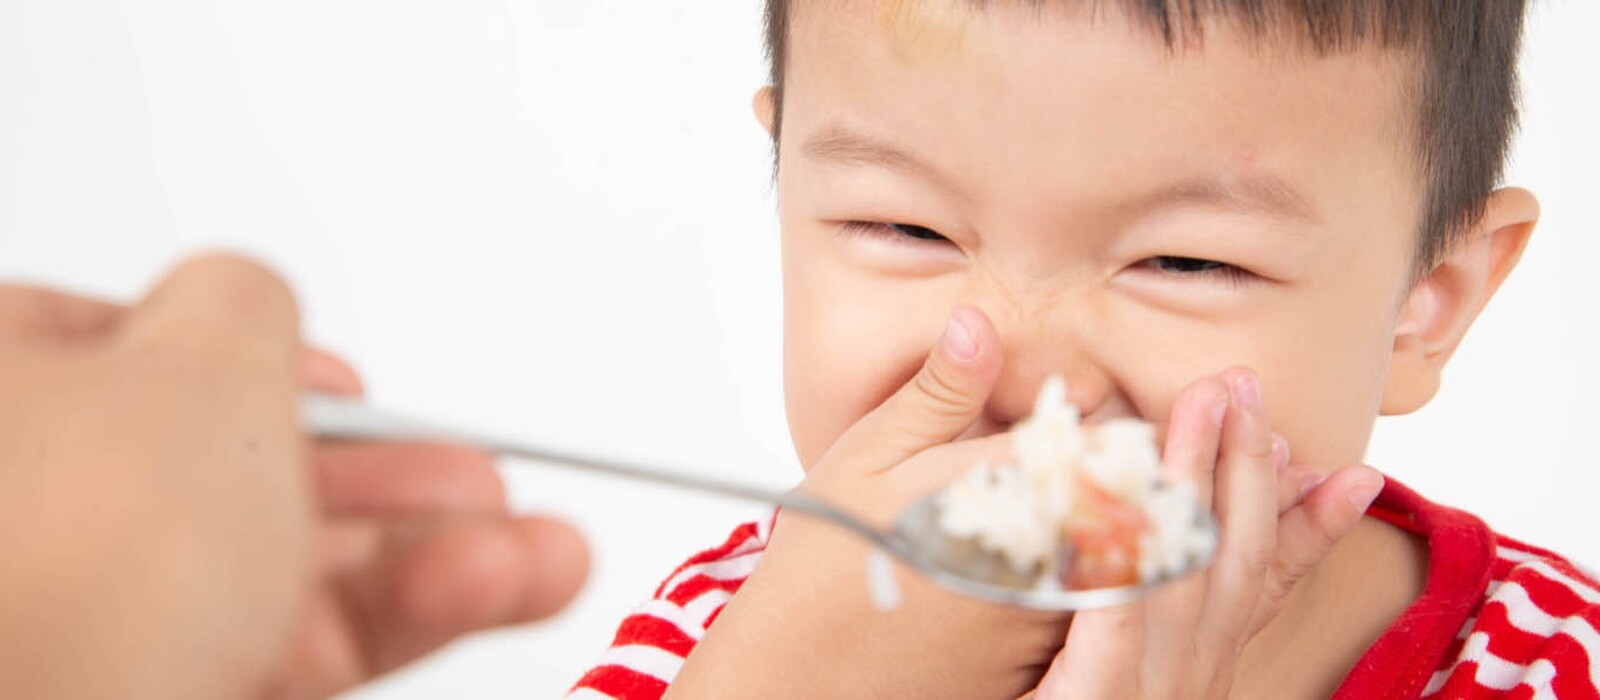 Why You Shouldn't Force Picky Eaters – And What Works Better